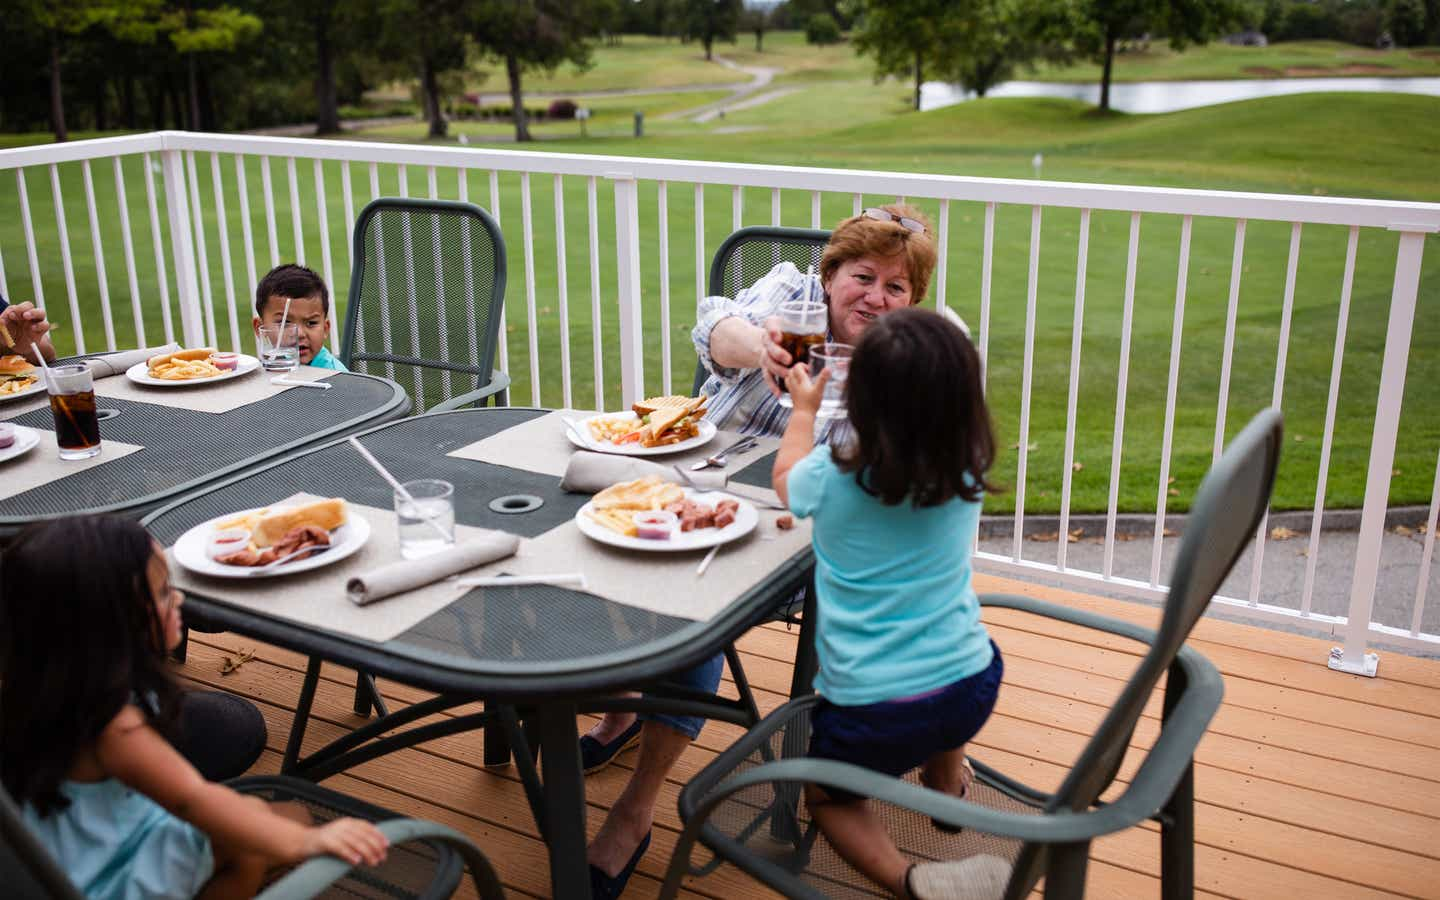 Family eating outdoors at The Grille on the Greens at Holiday Hills Resort in Branson, Missouri.